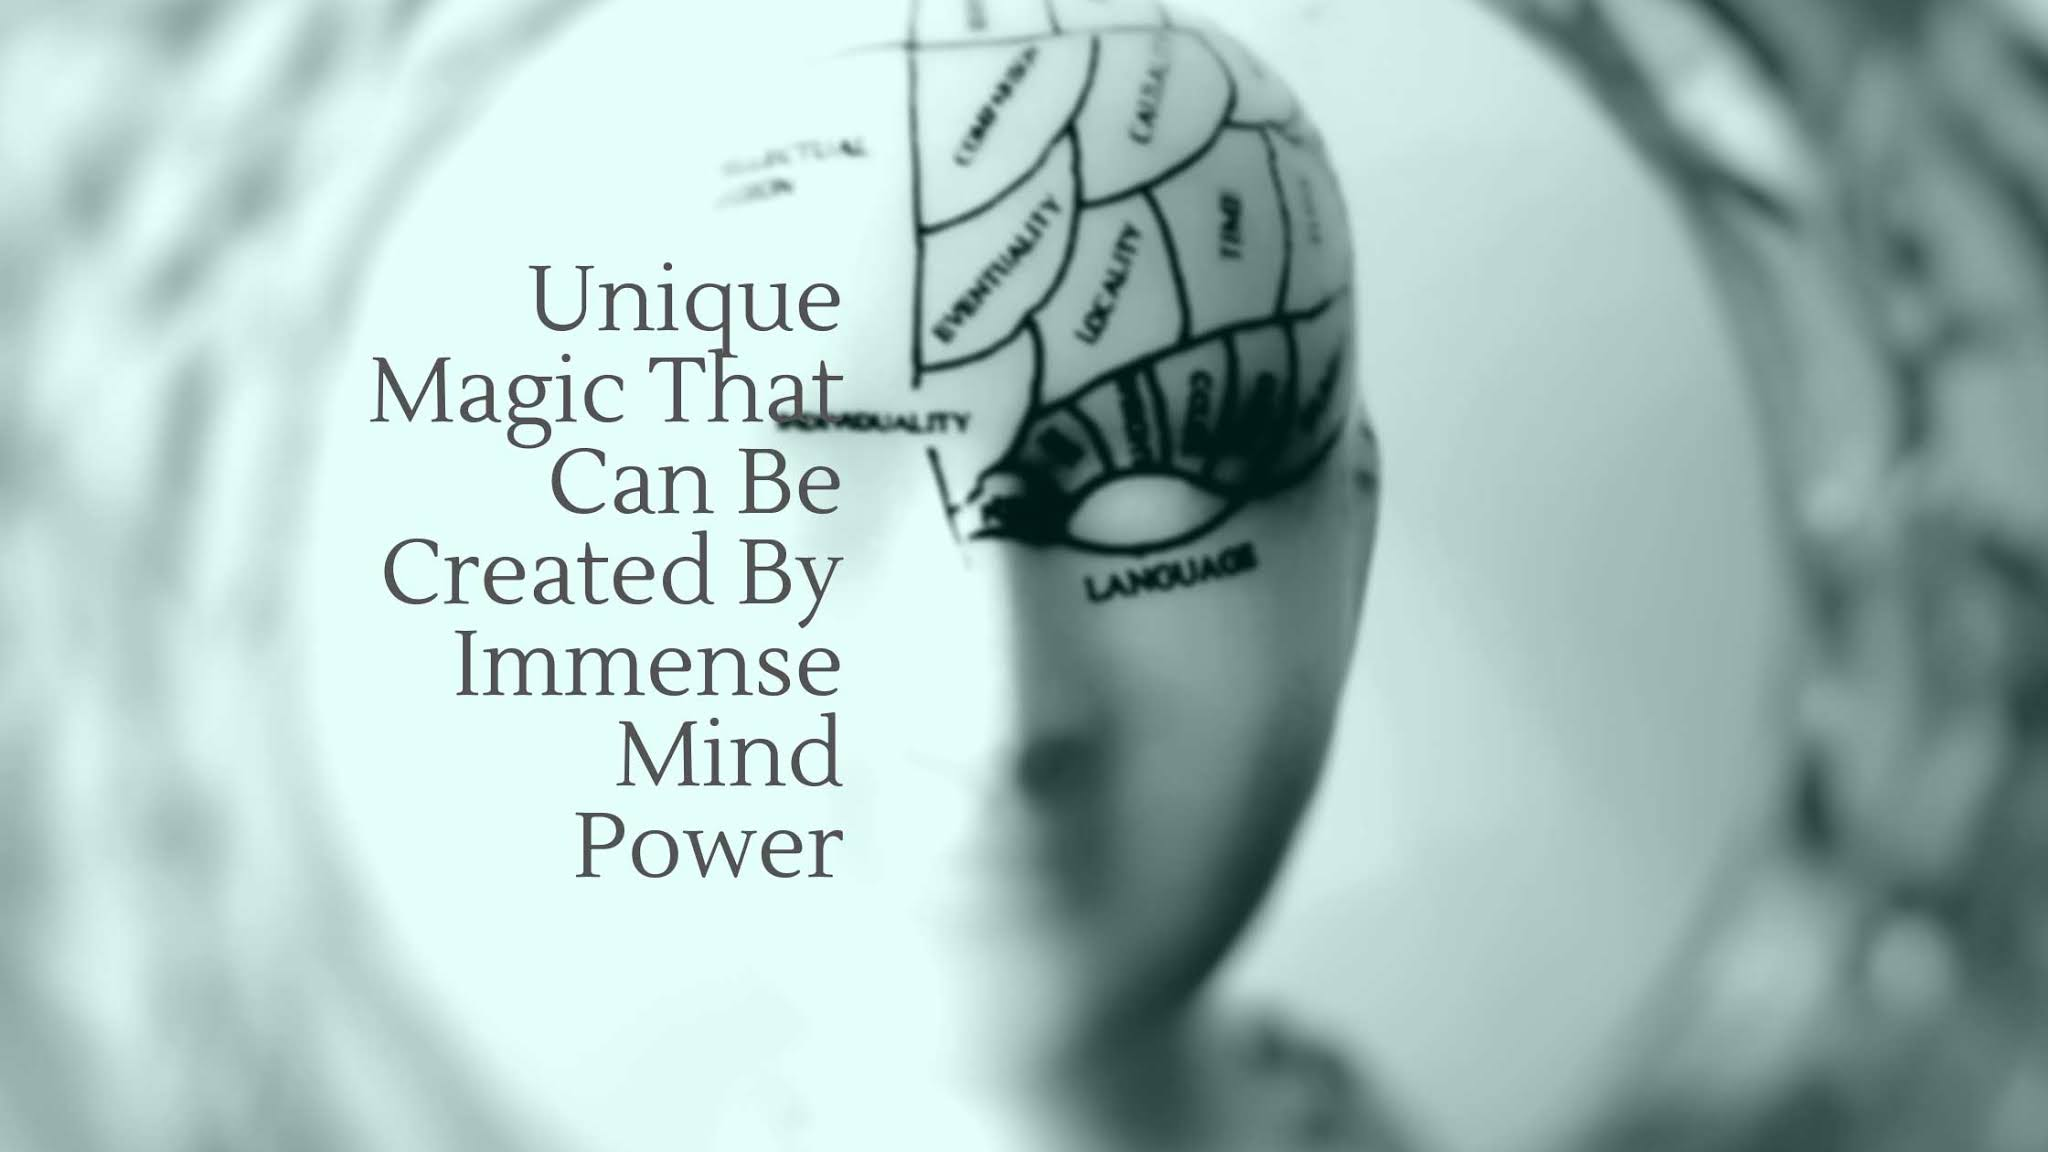 Unique Magic That Can Be Created By Immense Mind Power